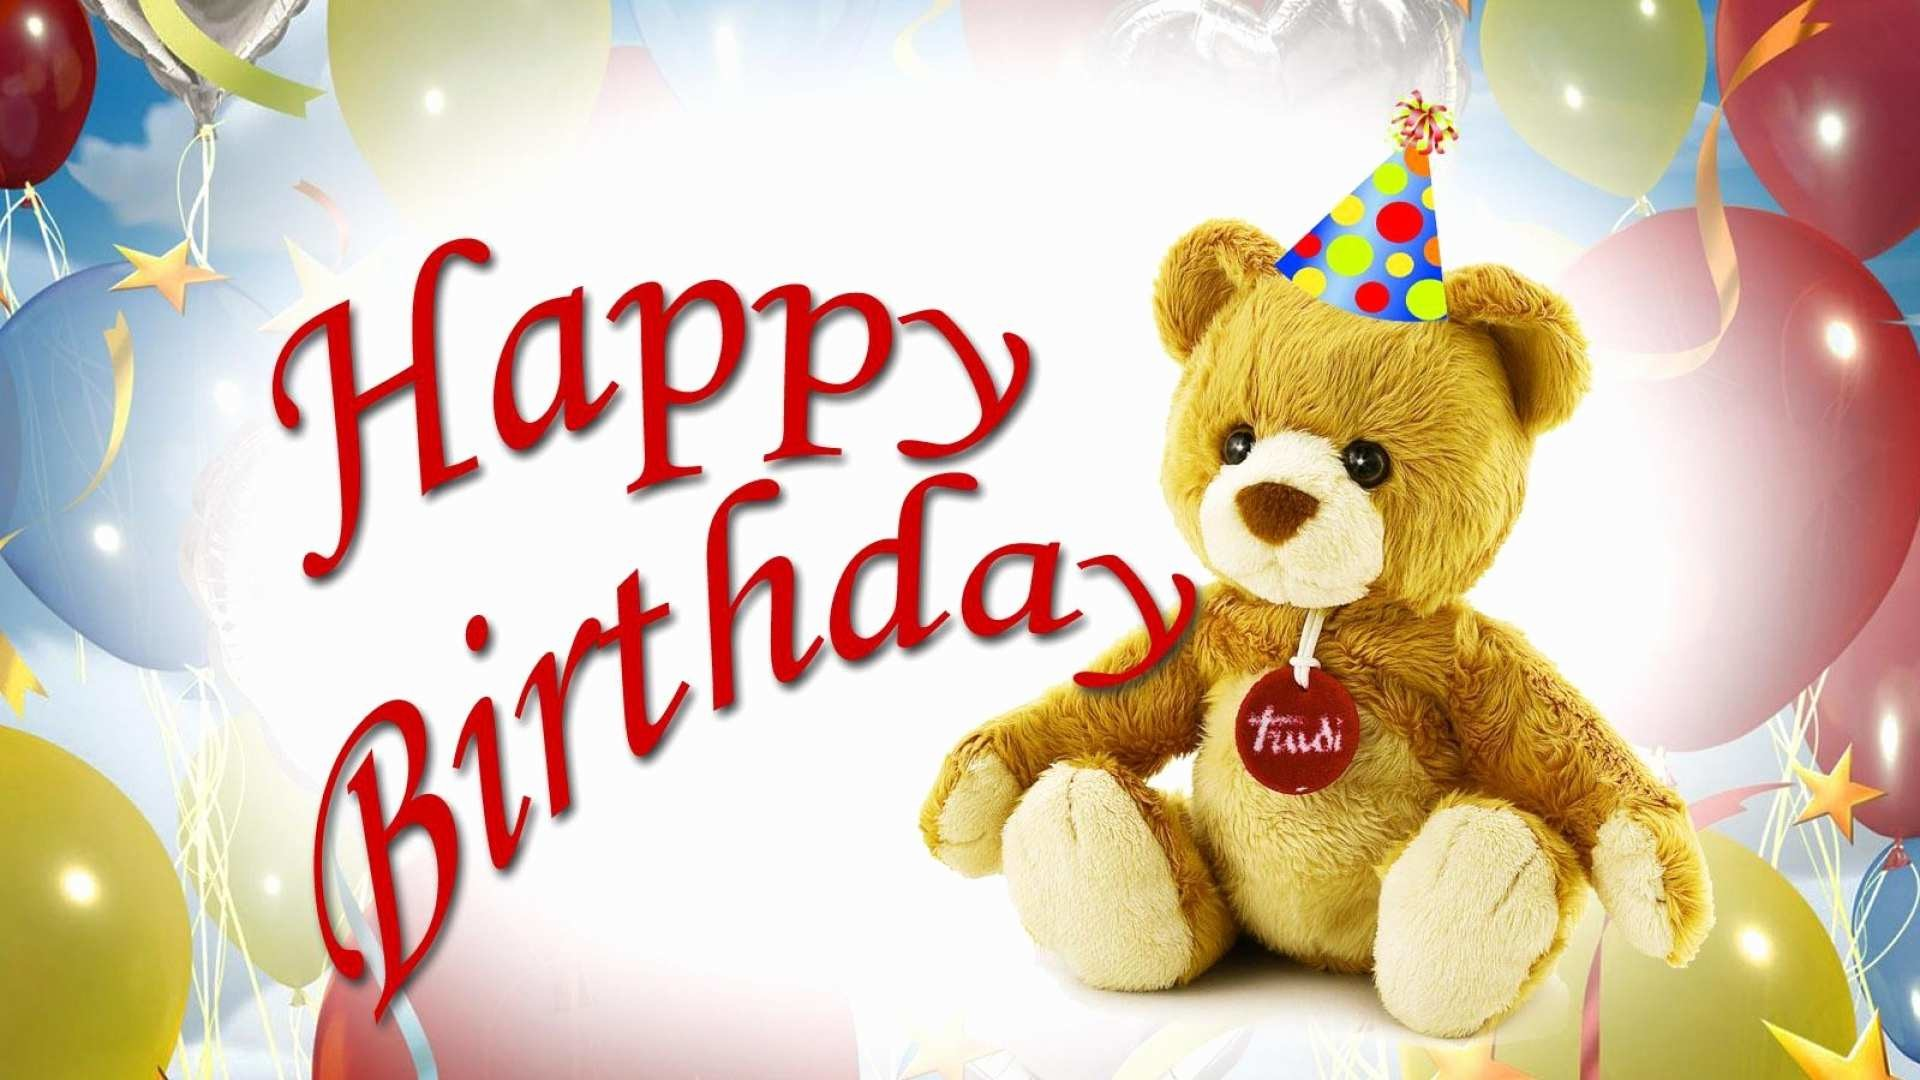 Res: 1920x1080, Happy Birthday Images Hd Free Download Best Of Teddy Bear Wallpapers Free  Download Impremedia